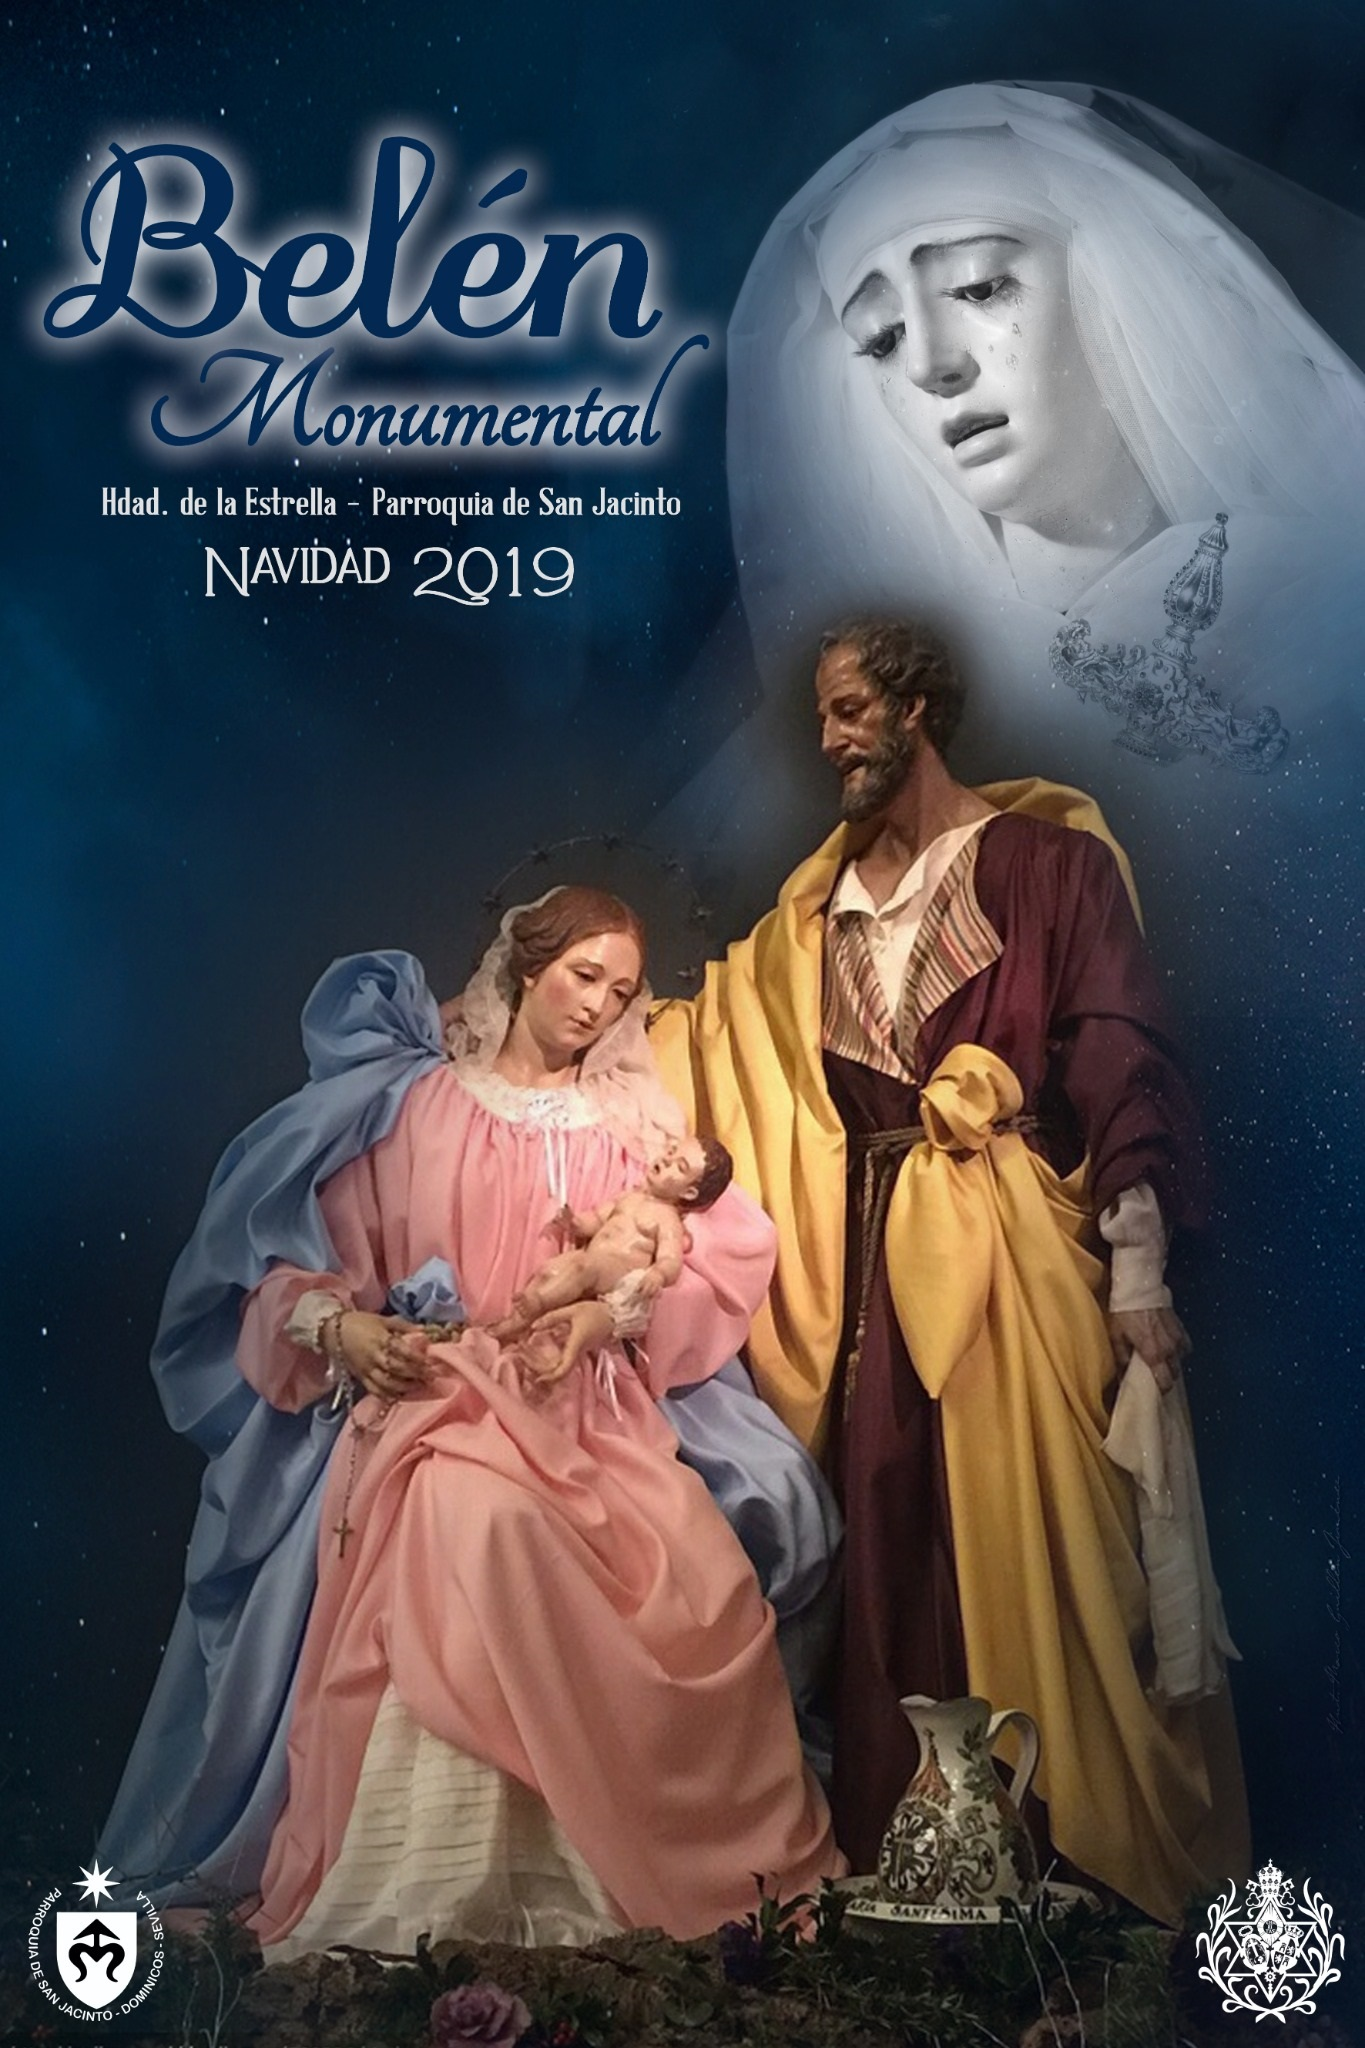 20191127 Cartel Belen Monumental 2019